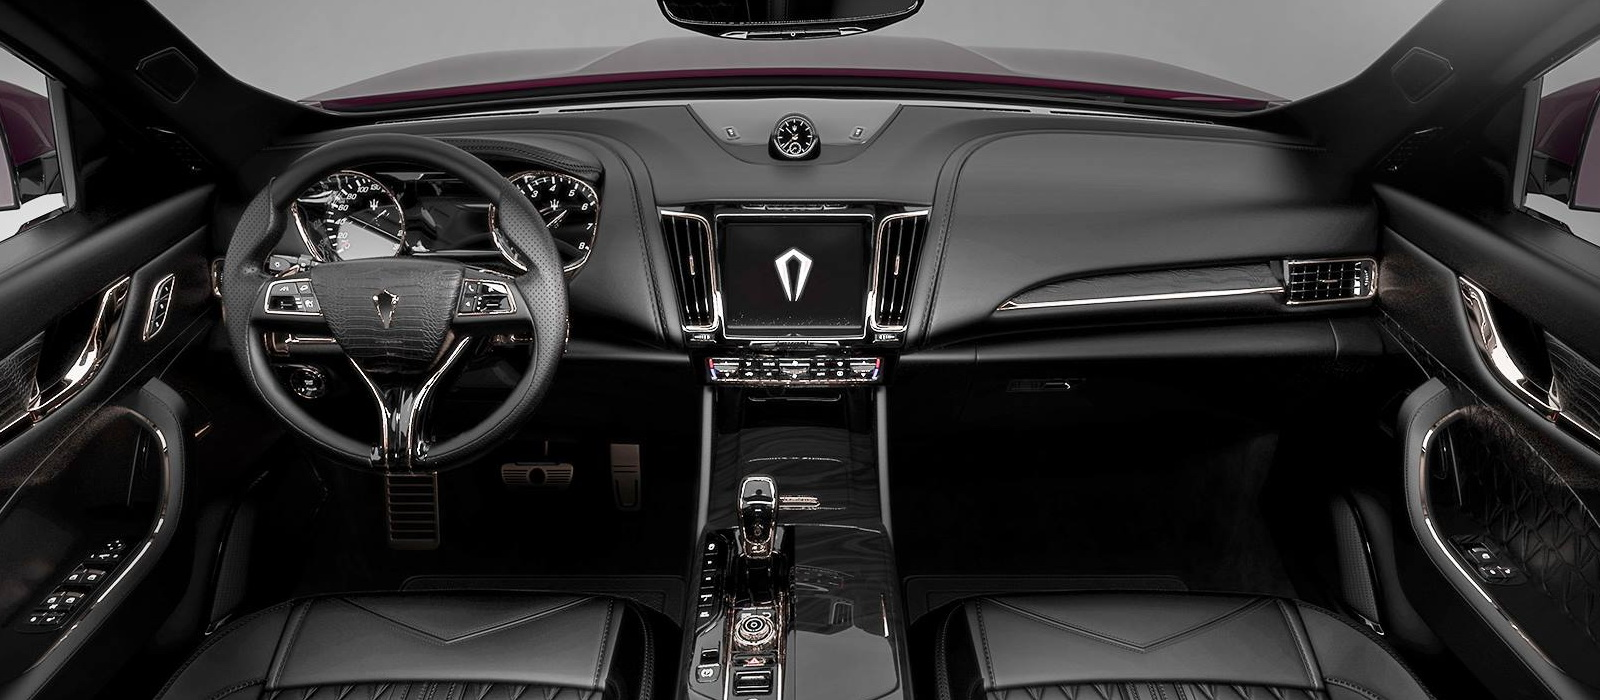 Maserati Levante Interior >> Maserati Levante Interior Dialed Up To 'Glamorous' By